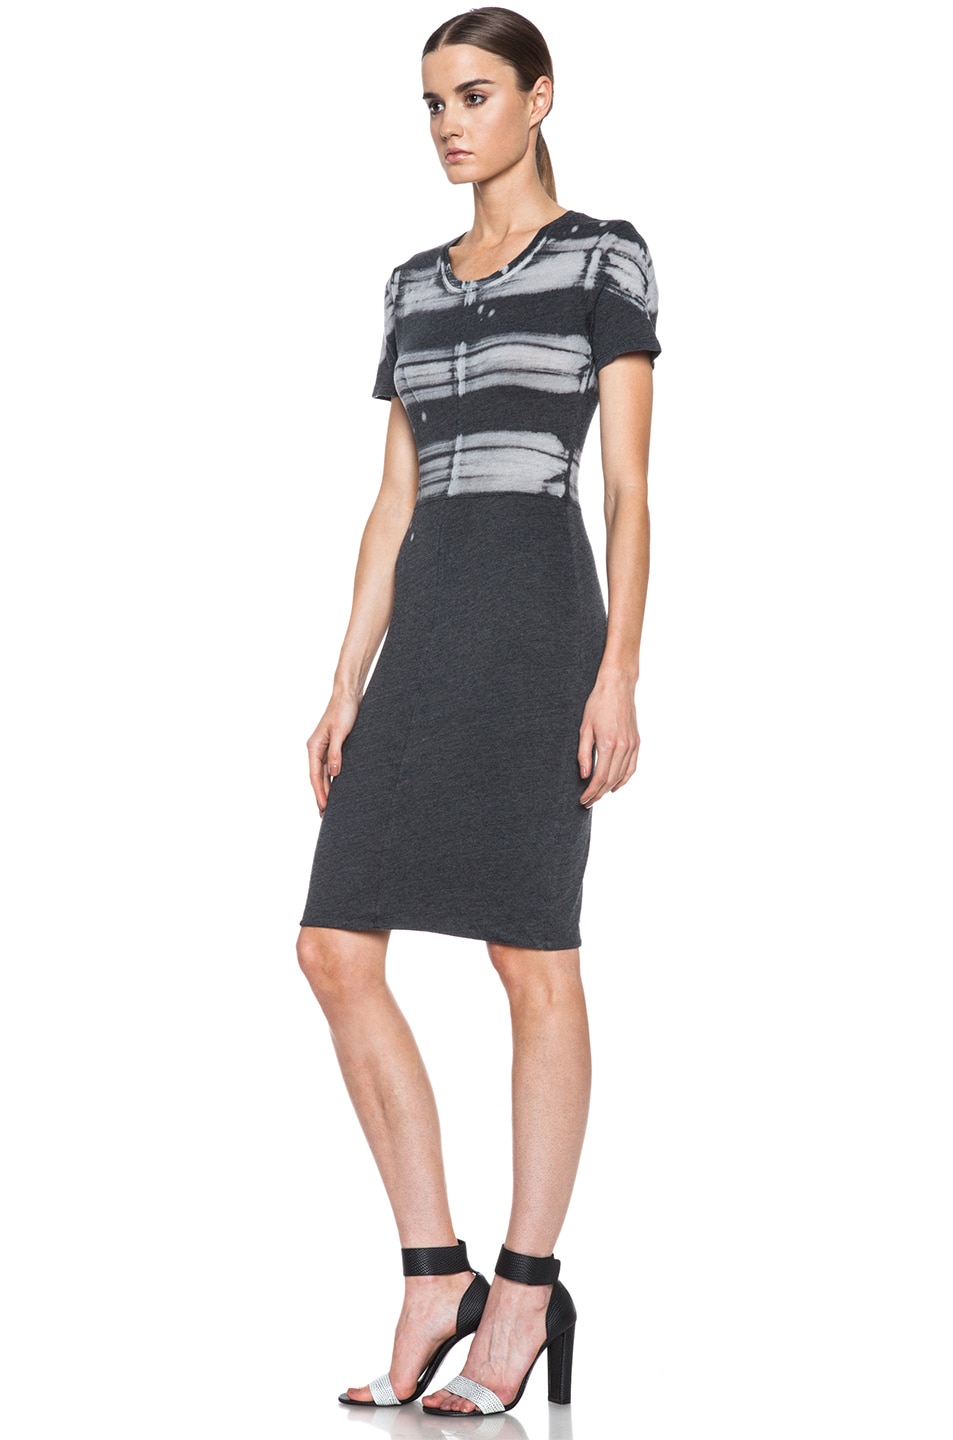 Image 2 of Raquel Allegra Cotton-Blend Cocktail Dress in Painter Stripe Black